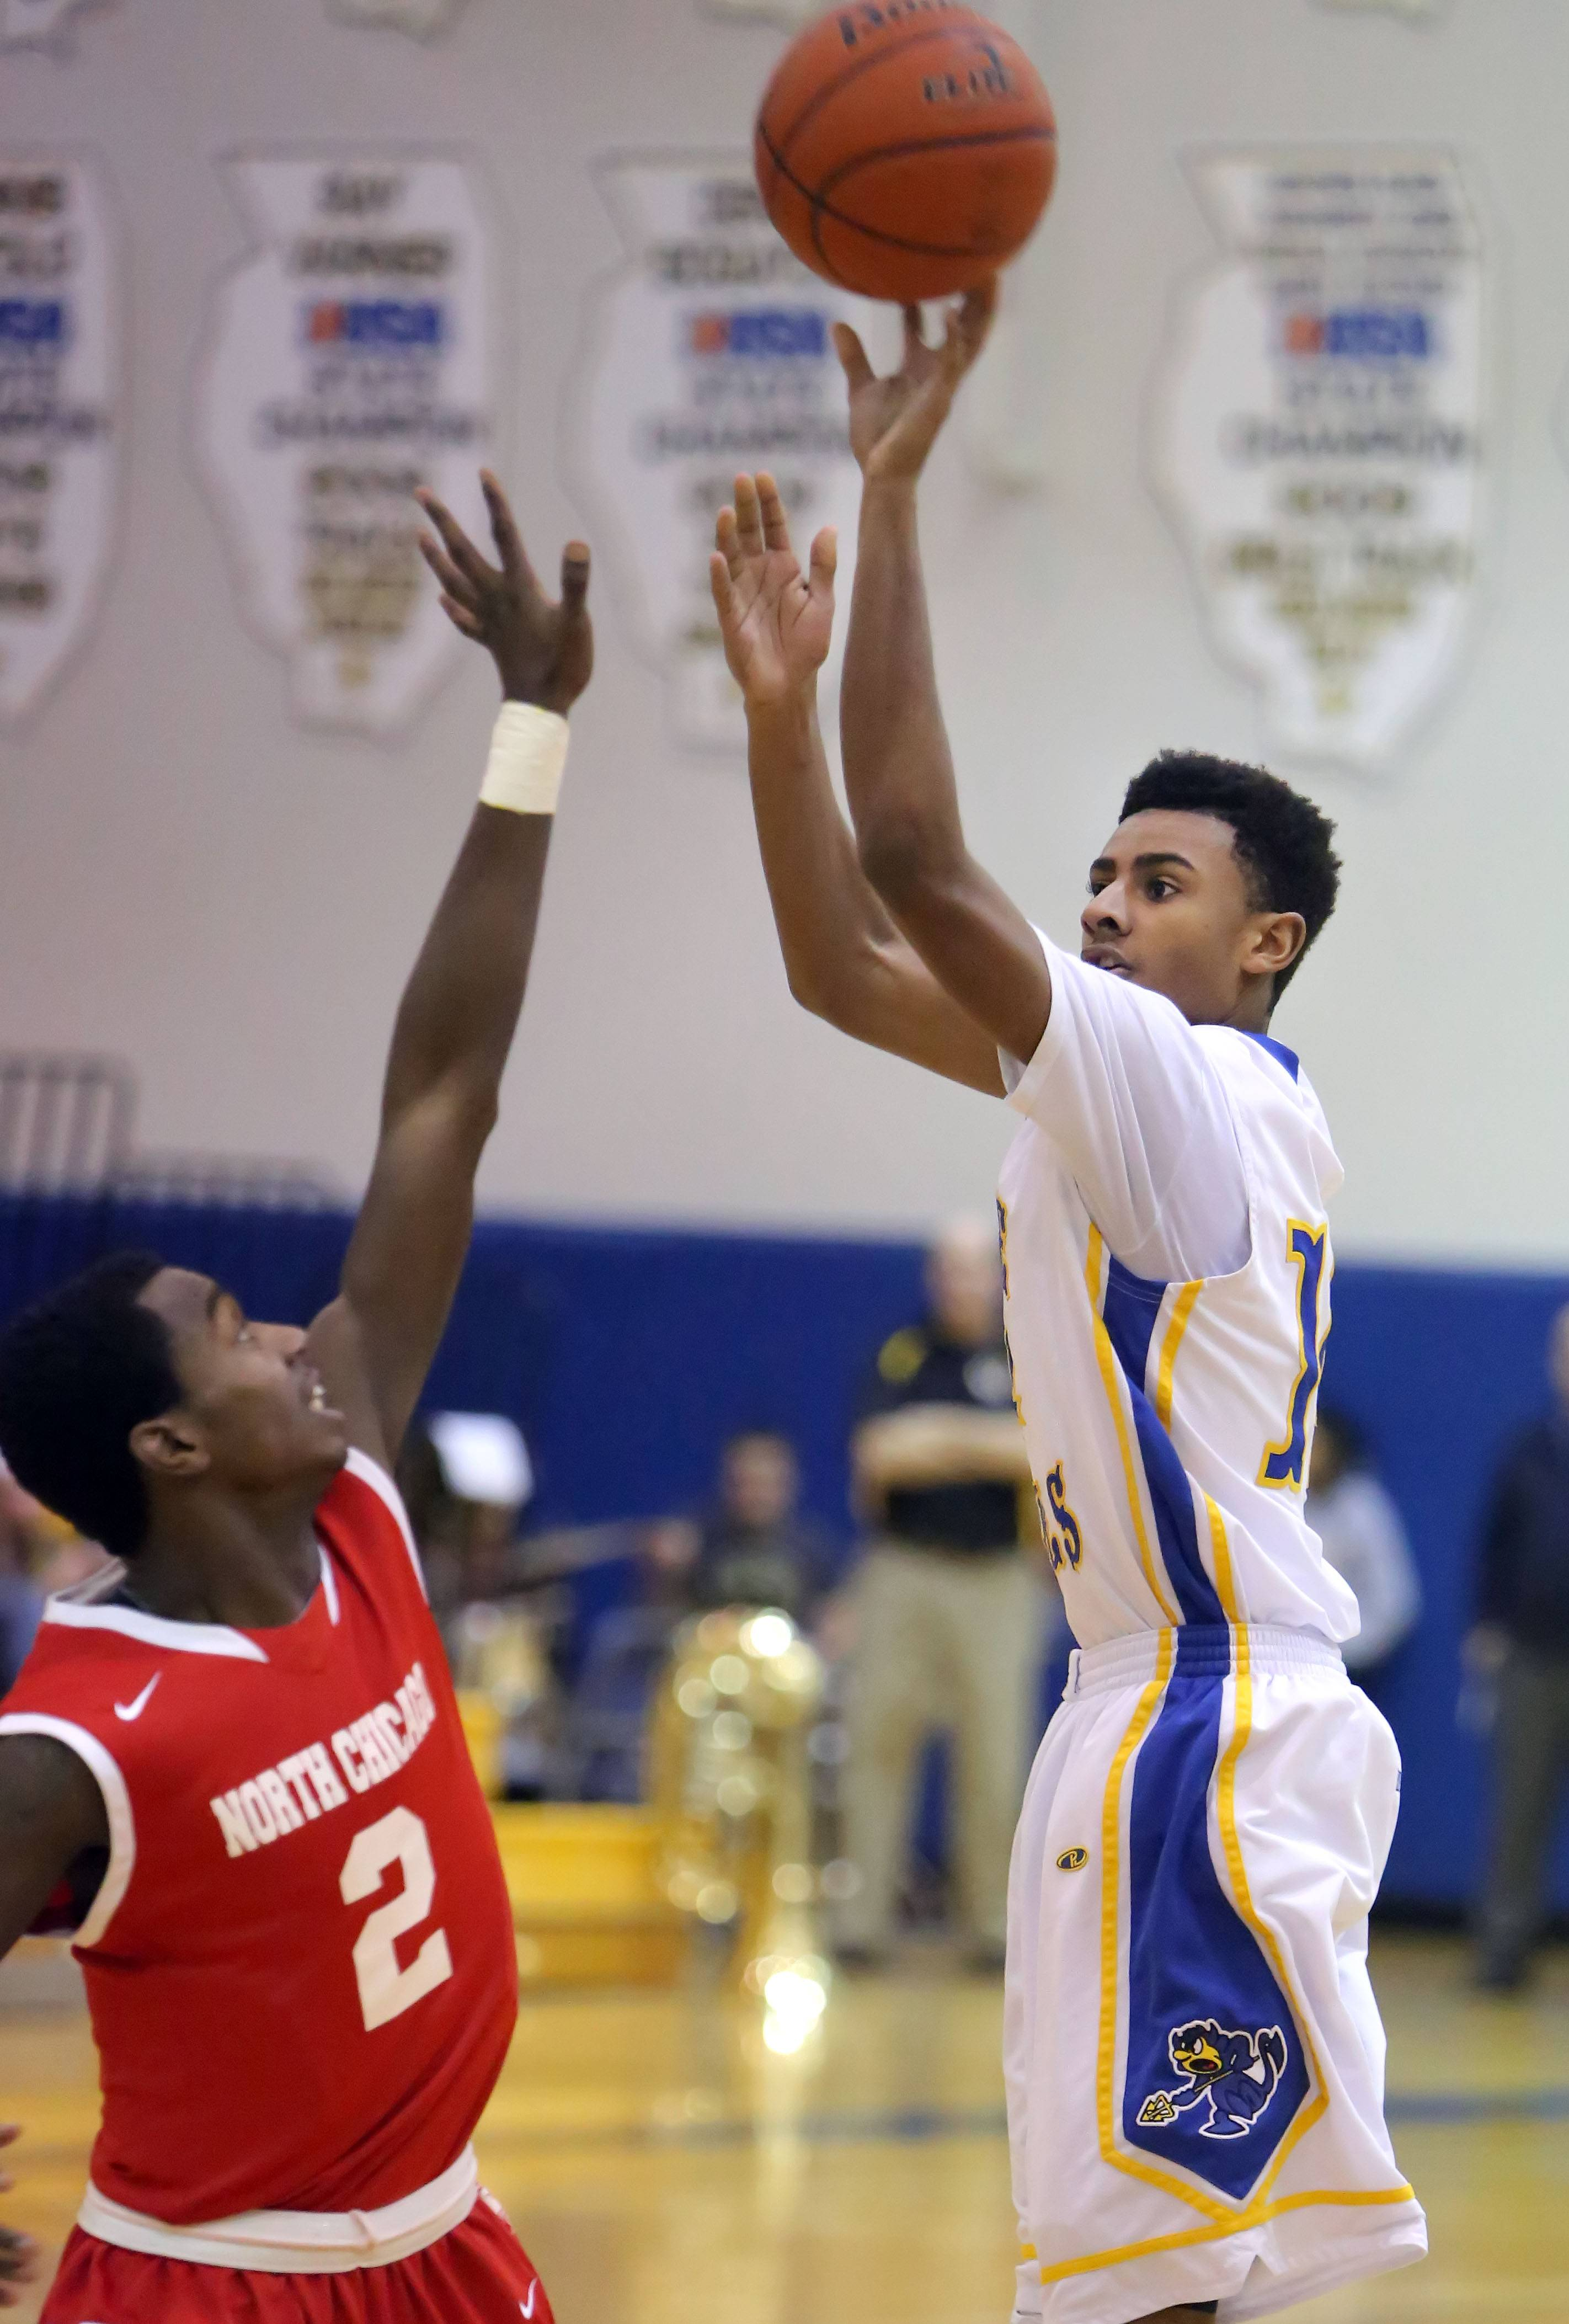 Warren's Adrian Deere, right, shoots over North Chicago's JaVairius Amos-Mays on Tuesday night at Warren.